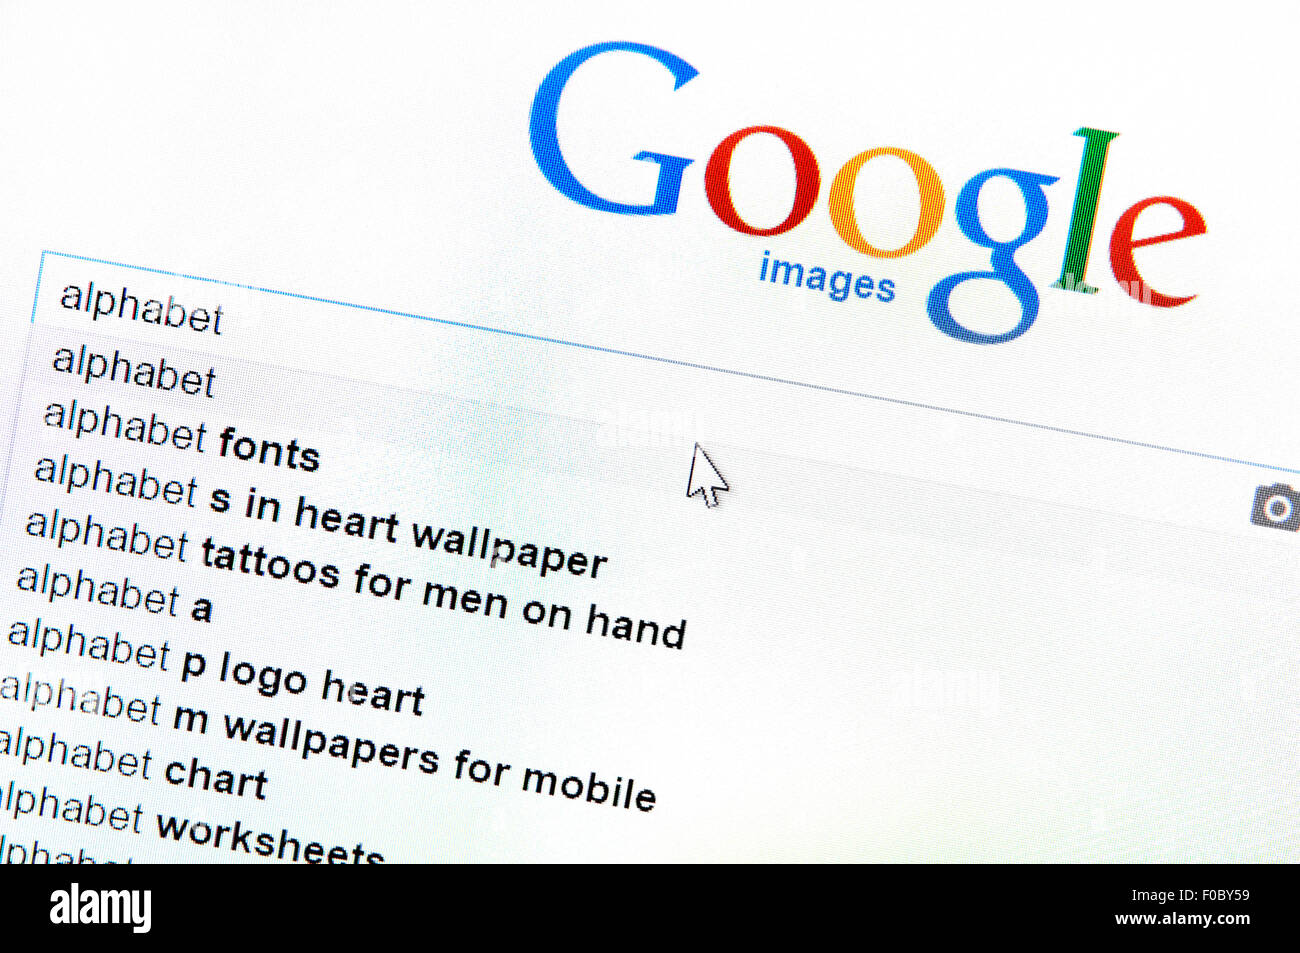 Google search for 'alphabet' - the name of their new parent company. Screen shot - Stock Image